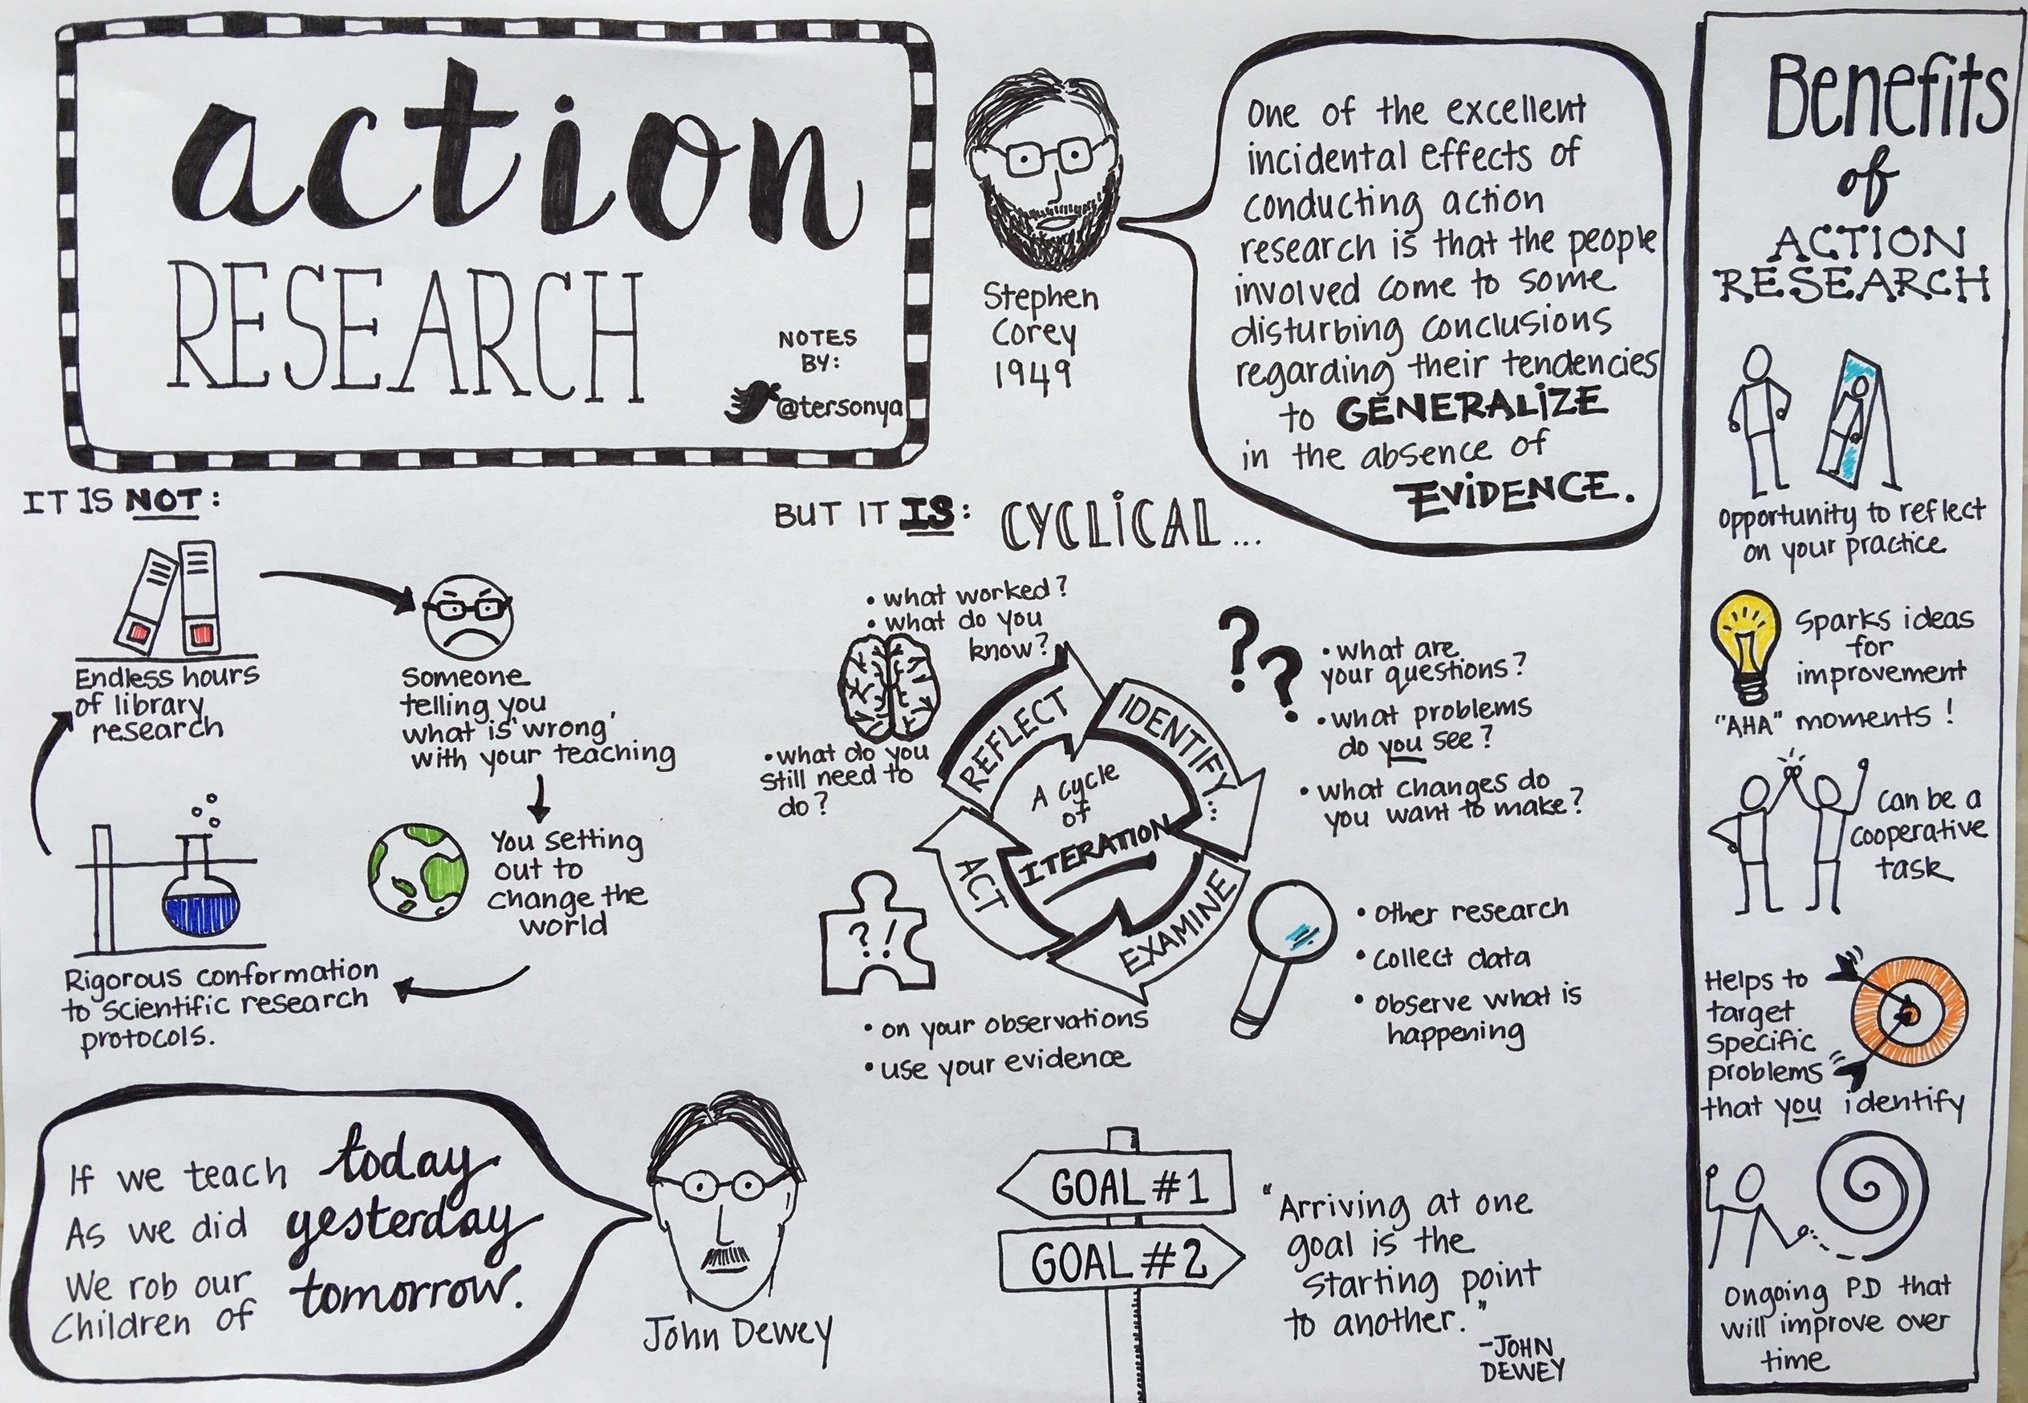 10 Great Action Research In Education Ideas action research sonya terborg 2021